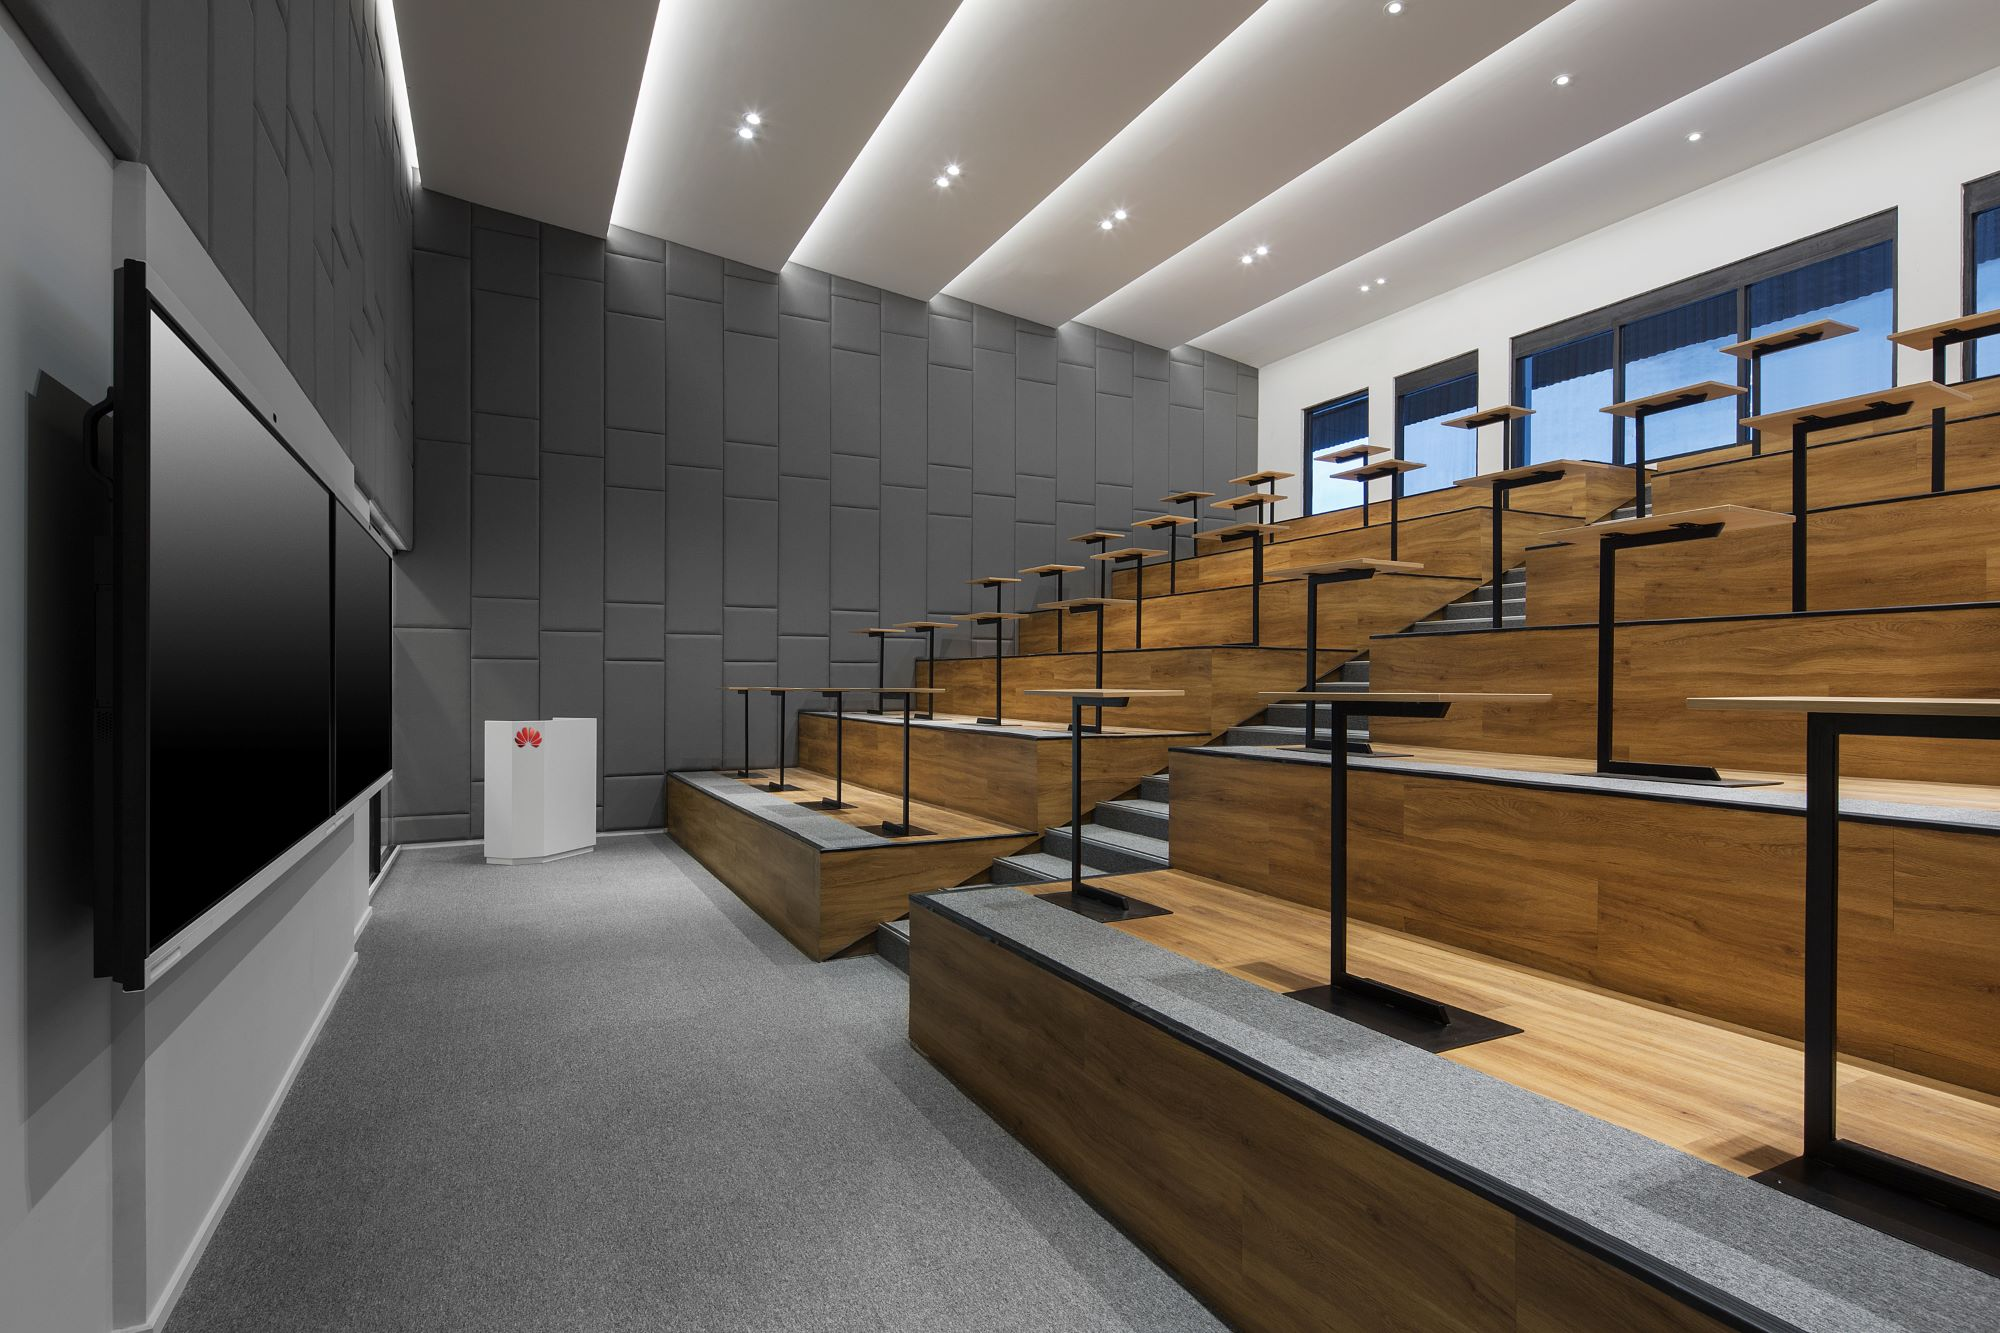 Big lecture hall for Huawei's new training center in Jakarta, Indonesia. Interior design + build by AVIP.